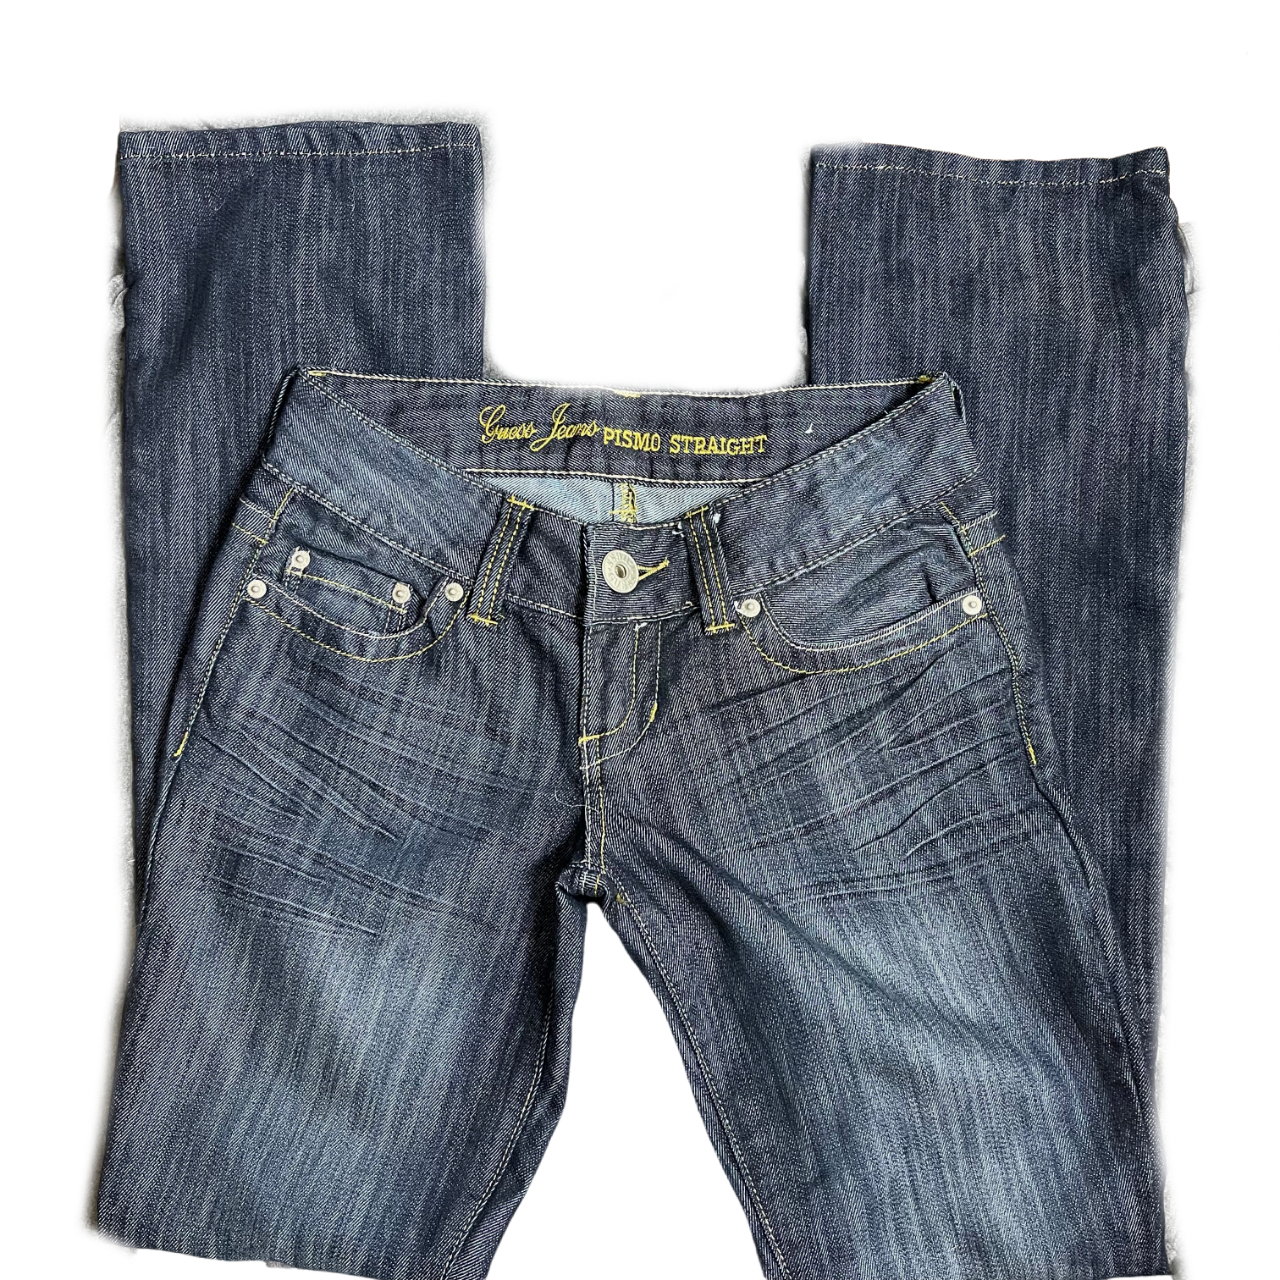 Product Image 1 - y2k guess low rise jeans